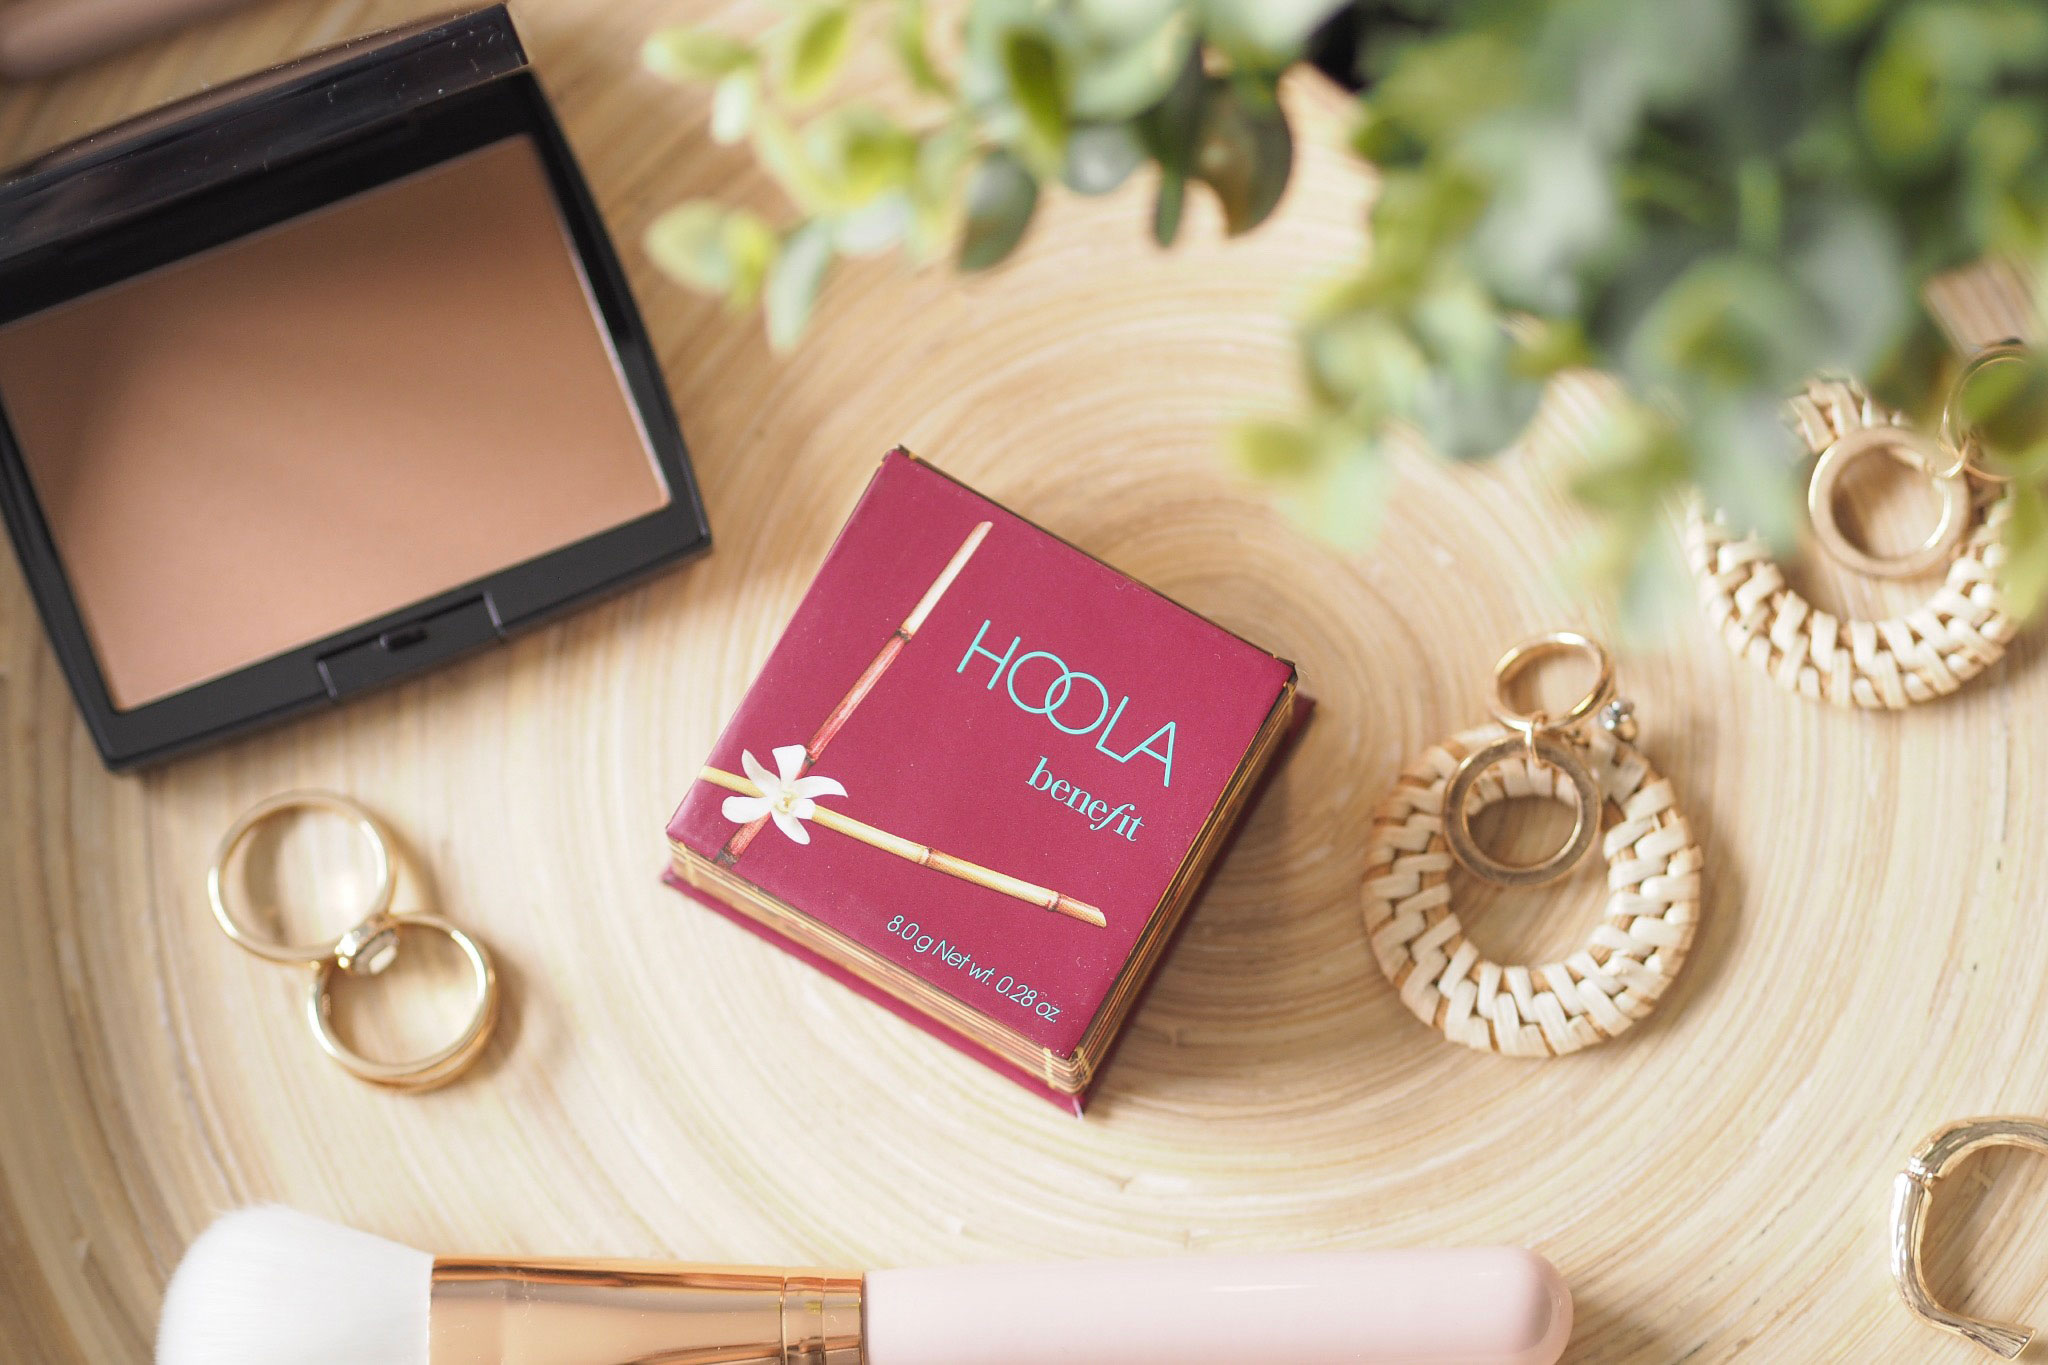 Benefit Hoola bronzer for cool toned skin